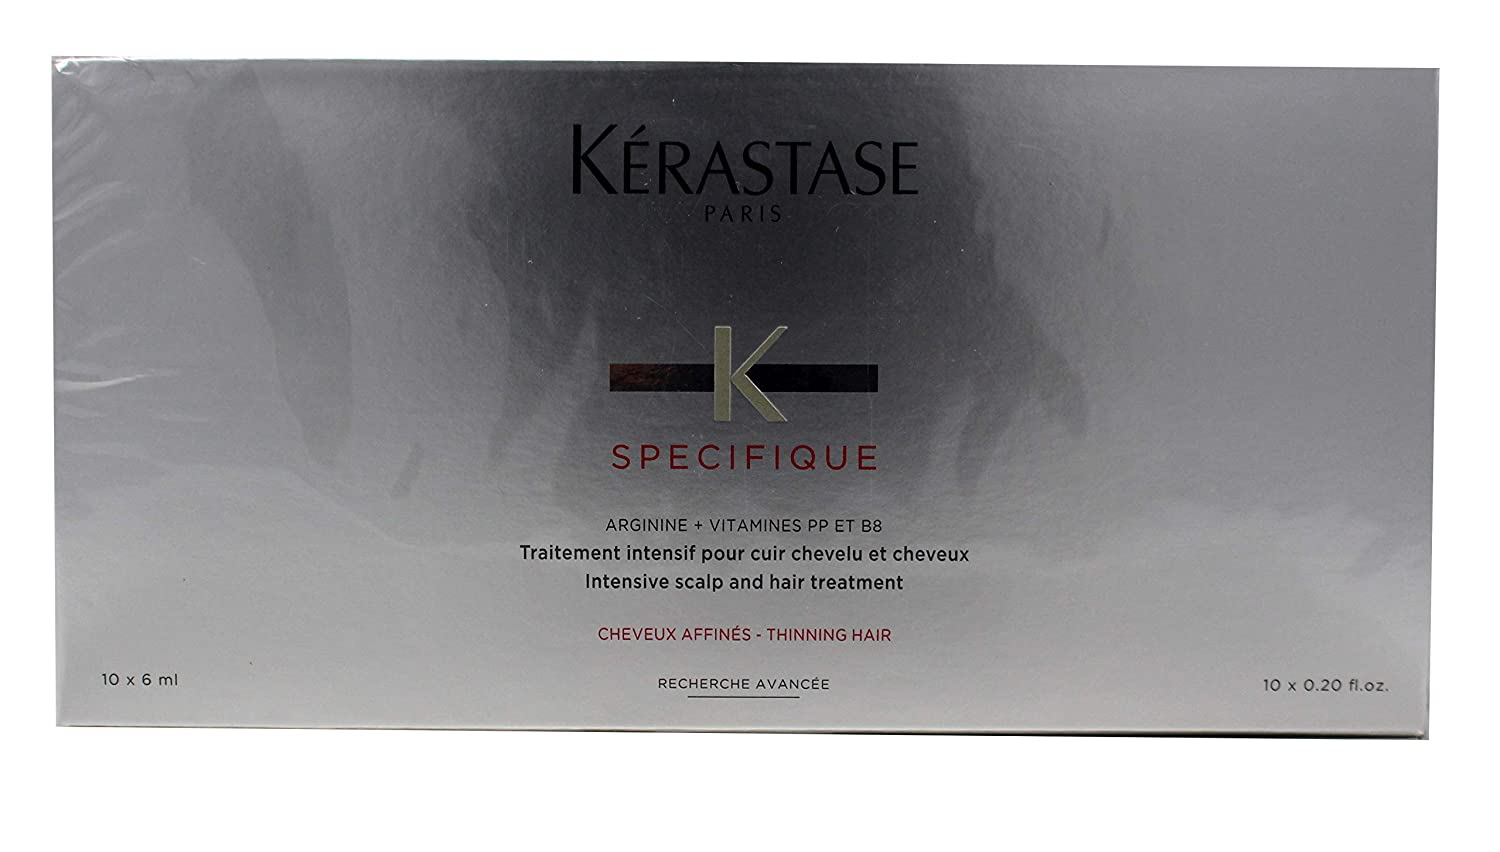 Kerastase Specifique Intensive Scalp Treatment (For Thinning Hair, Prone to Hair Loss) 10x6ml